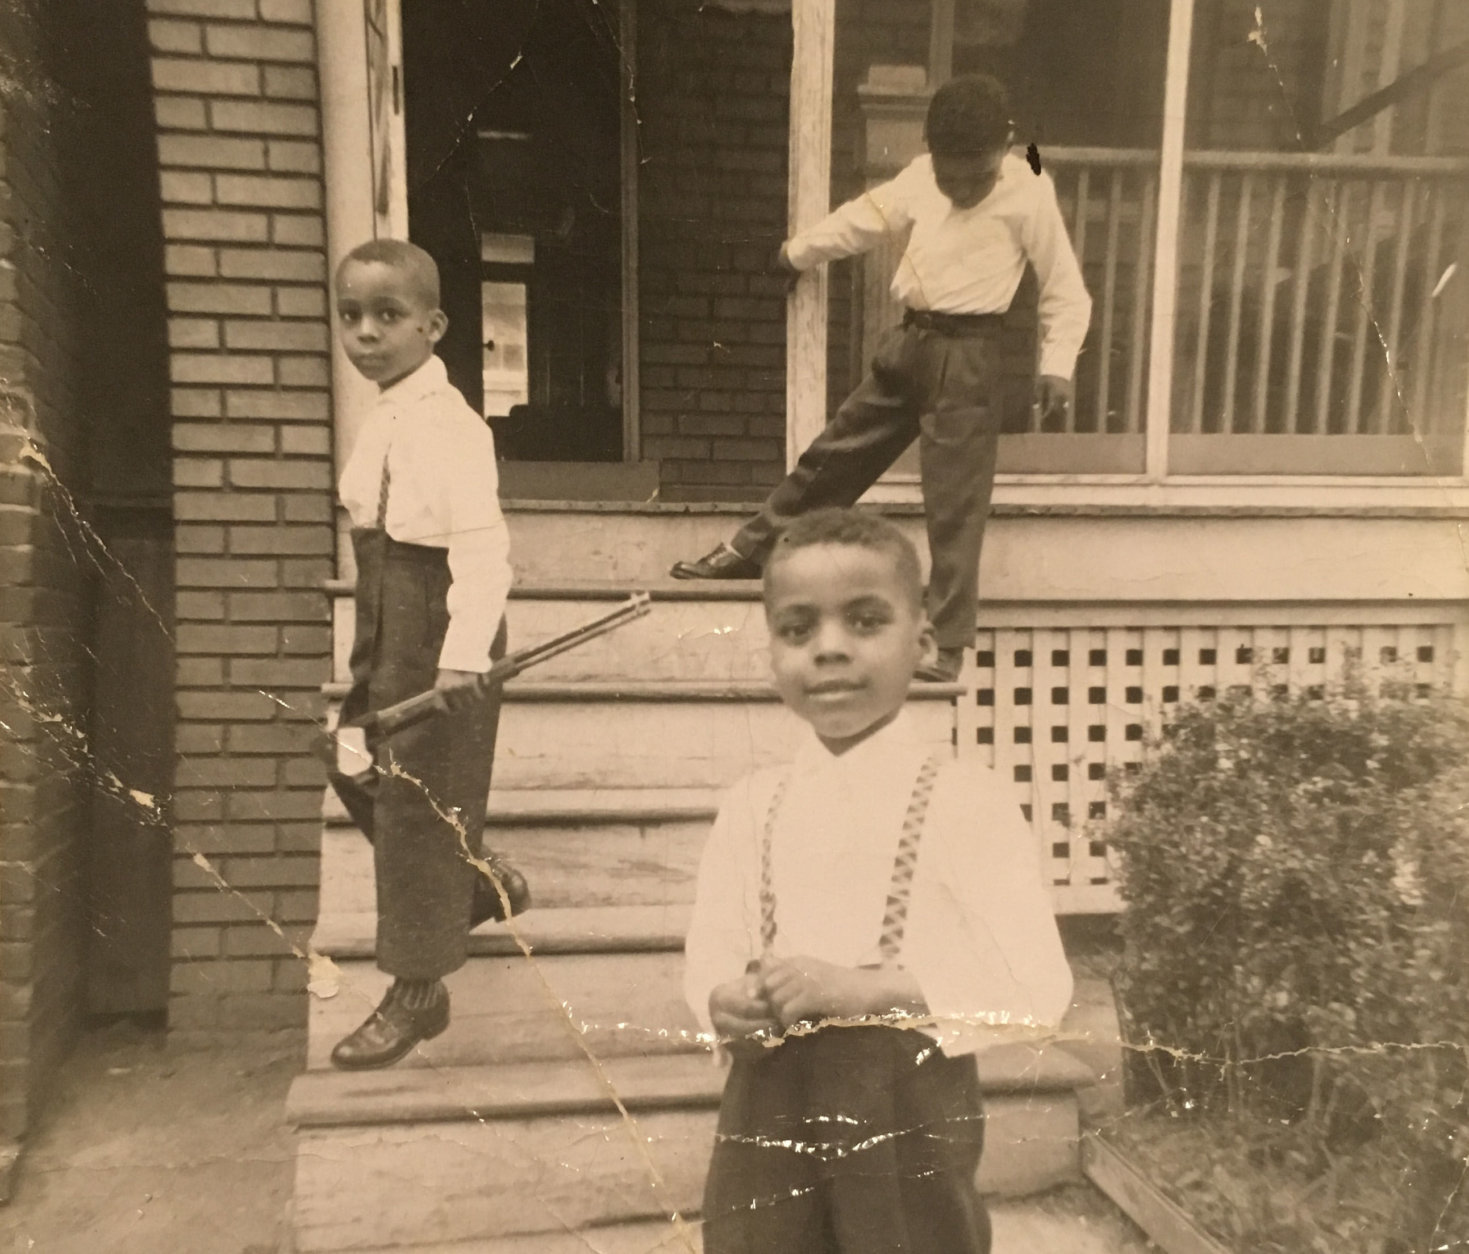 The Lawson boys in 1959. Vincent (center) was 15 when he went missing amid the upheaval during the 1968 riots in D.C. In 1971, construction workers discovered his remains inside a fire-damaged H Street warehouse that had been boarded up since the riots. (Courtesy Vanessa Lawson Dixon)